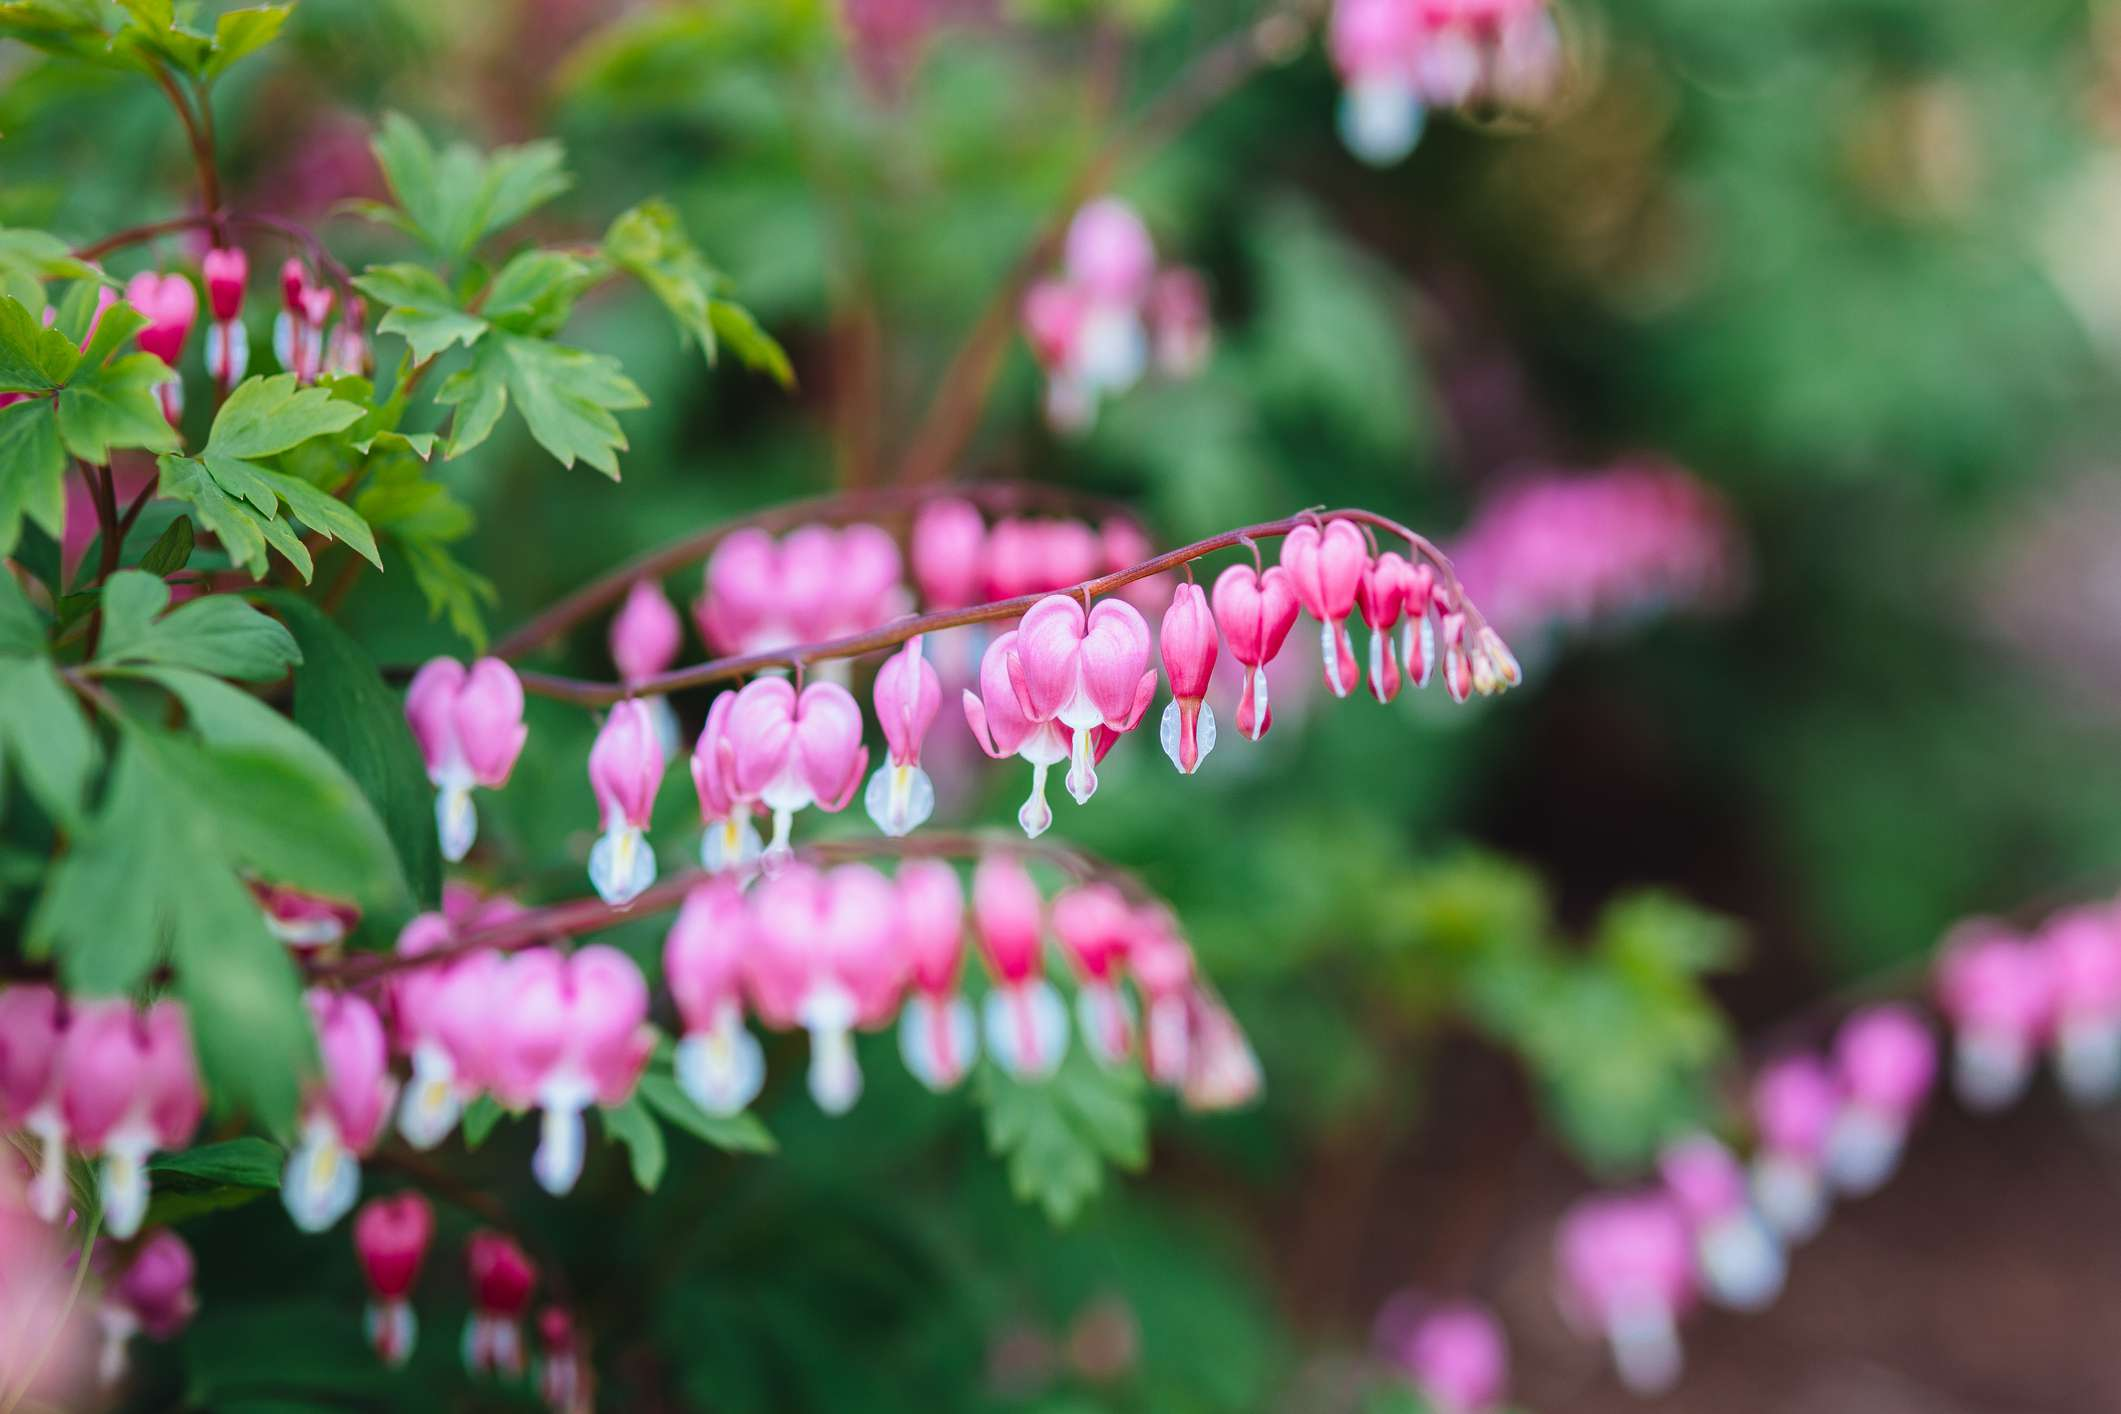 pink and white bleeding heart flowers and green leaves